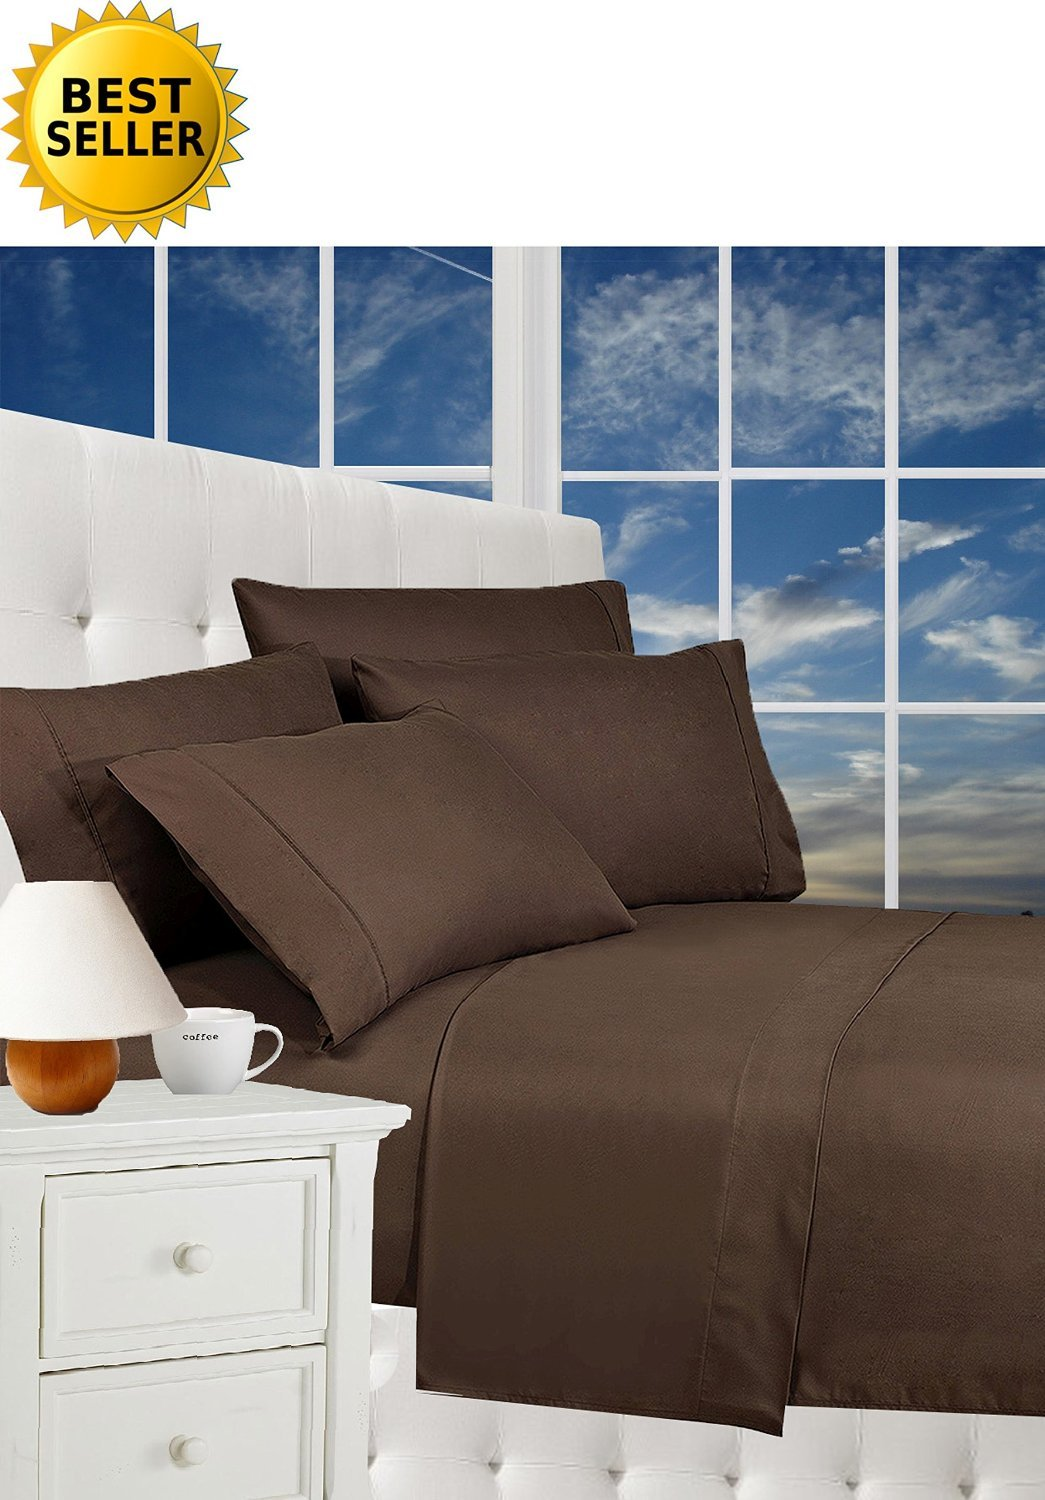 Best Seller Luxurious Bed Sheets Set on Amazon Full Chocolate Brown